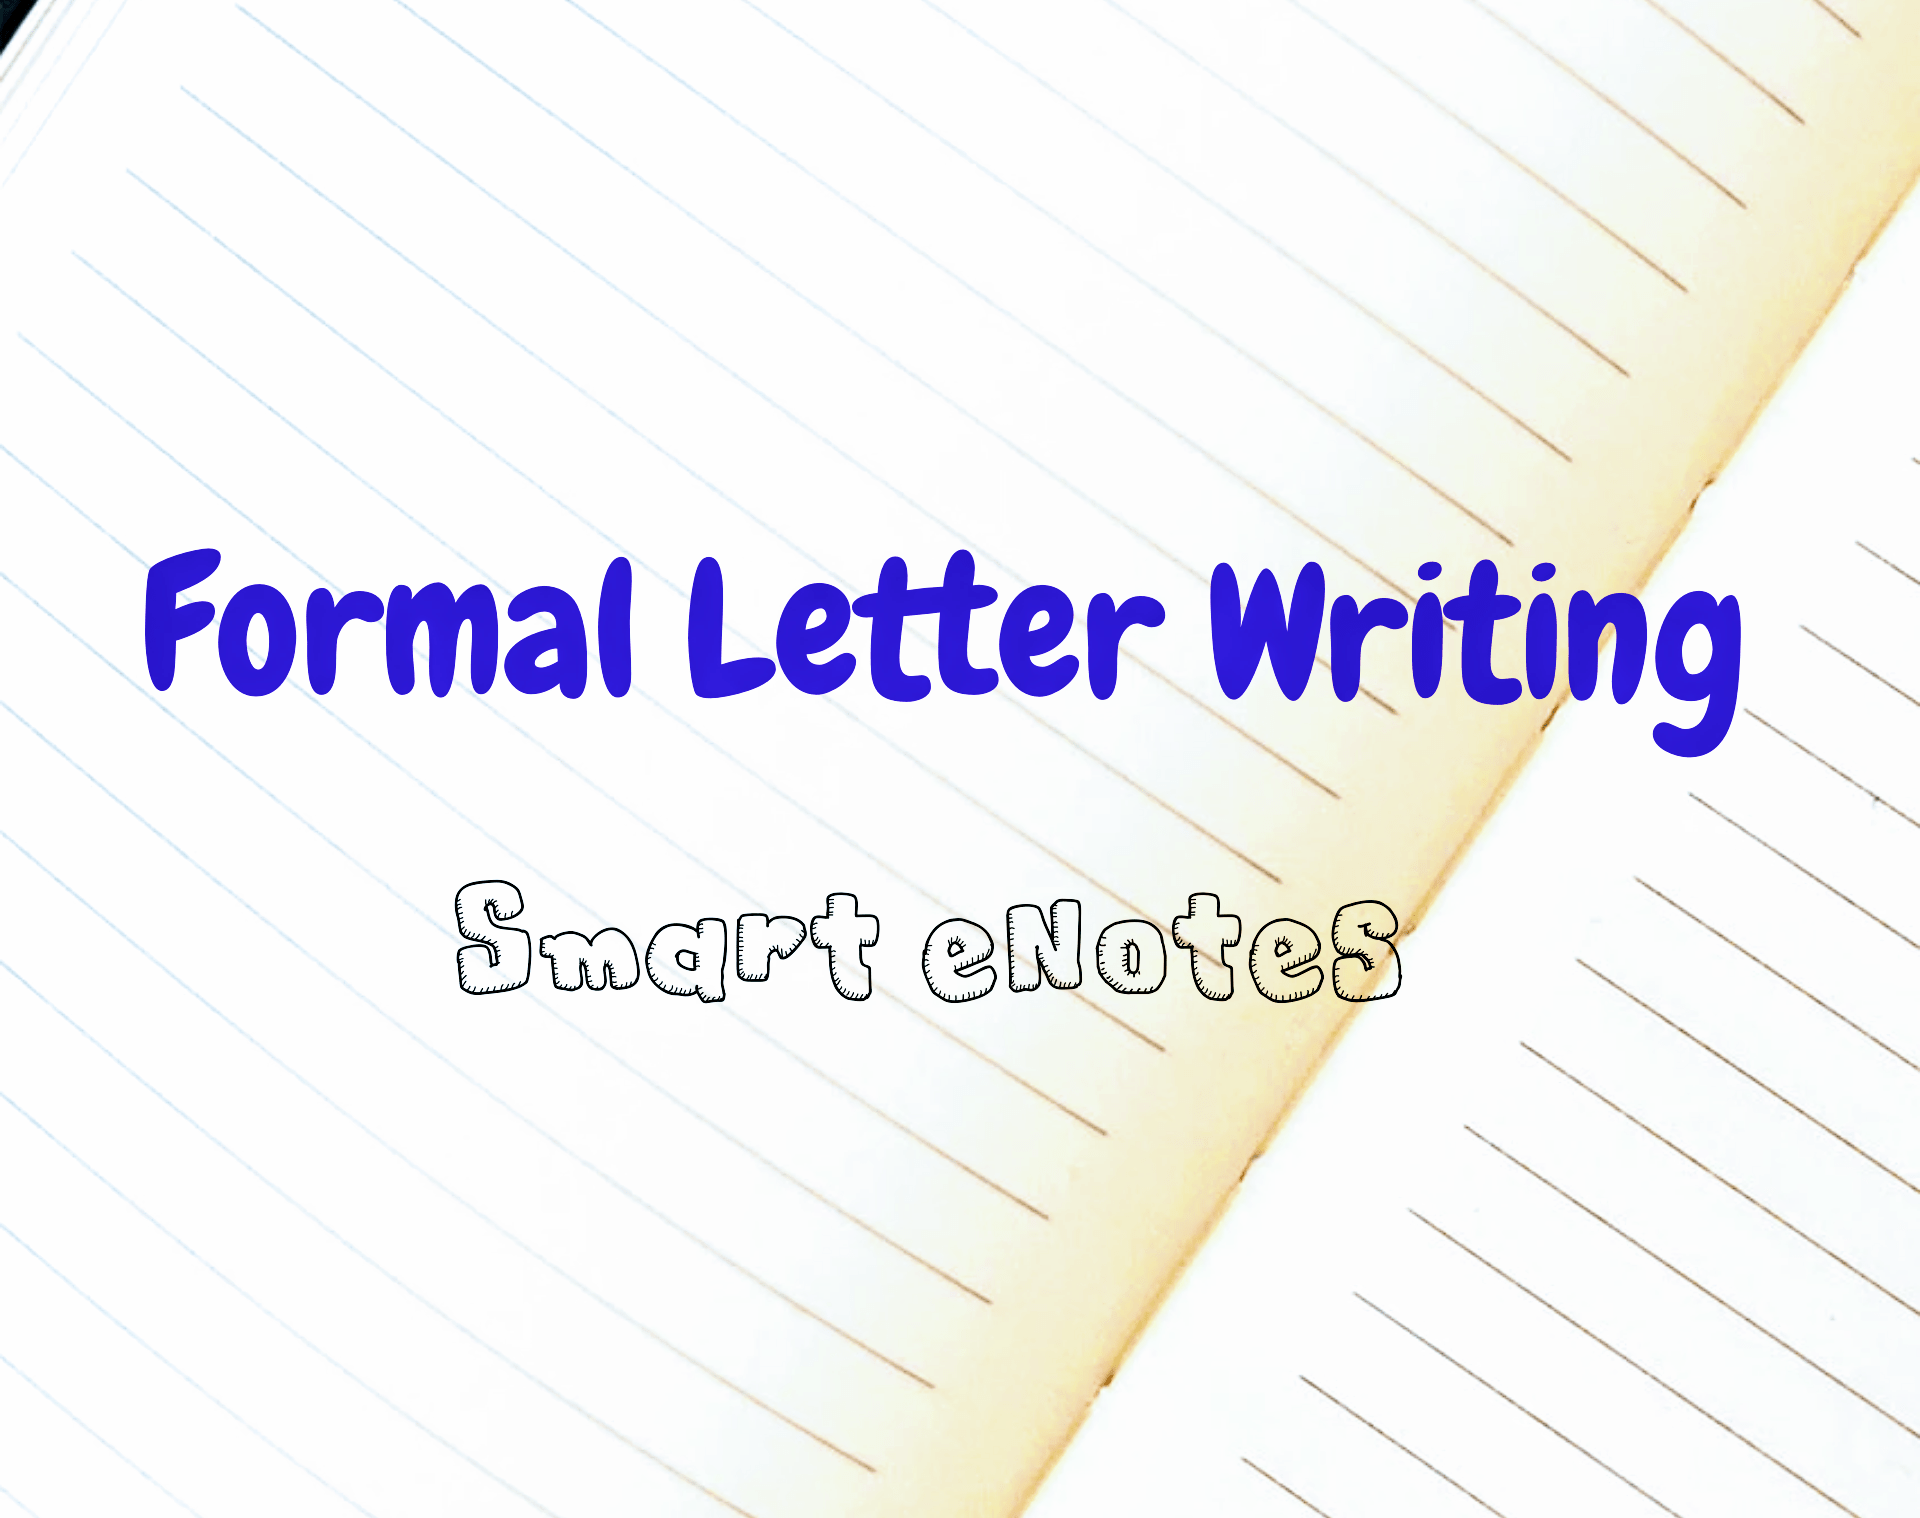 Formal Letter Writing : Parts of a Letter, Important Points, Format and Samples of Formal Letter Writing 2